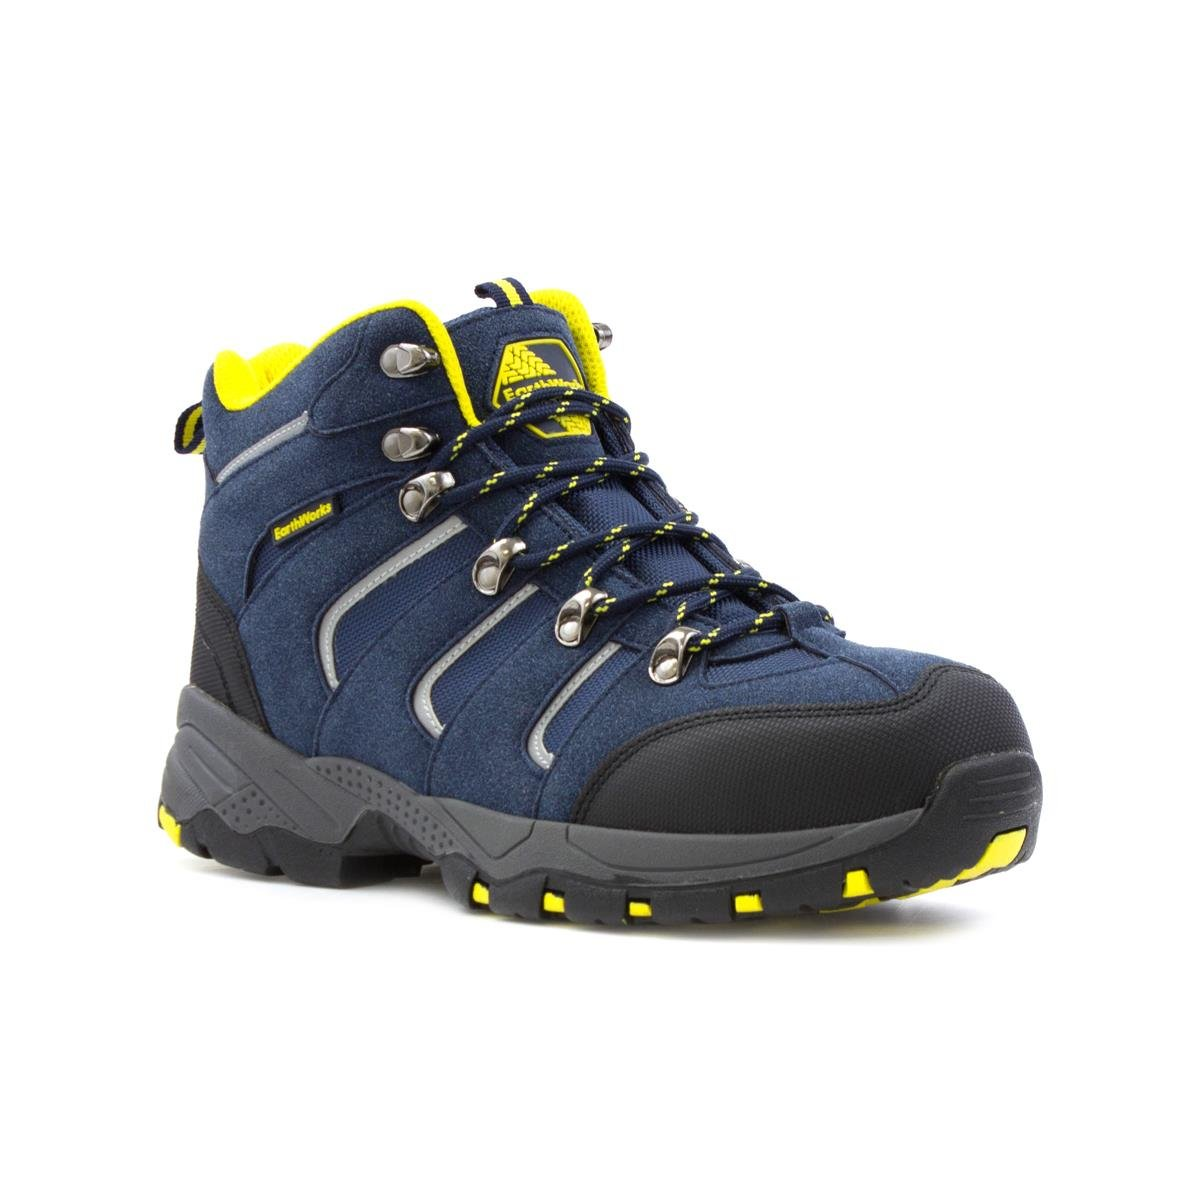 638d42a8e15 Earth Works Safety - Earthworks Mens Navy Lace Up Safety Boot - Size ...